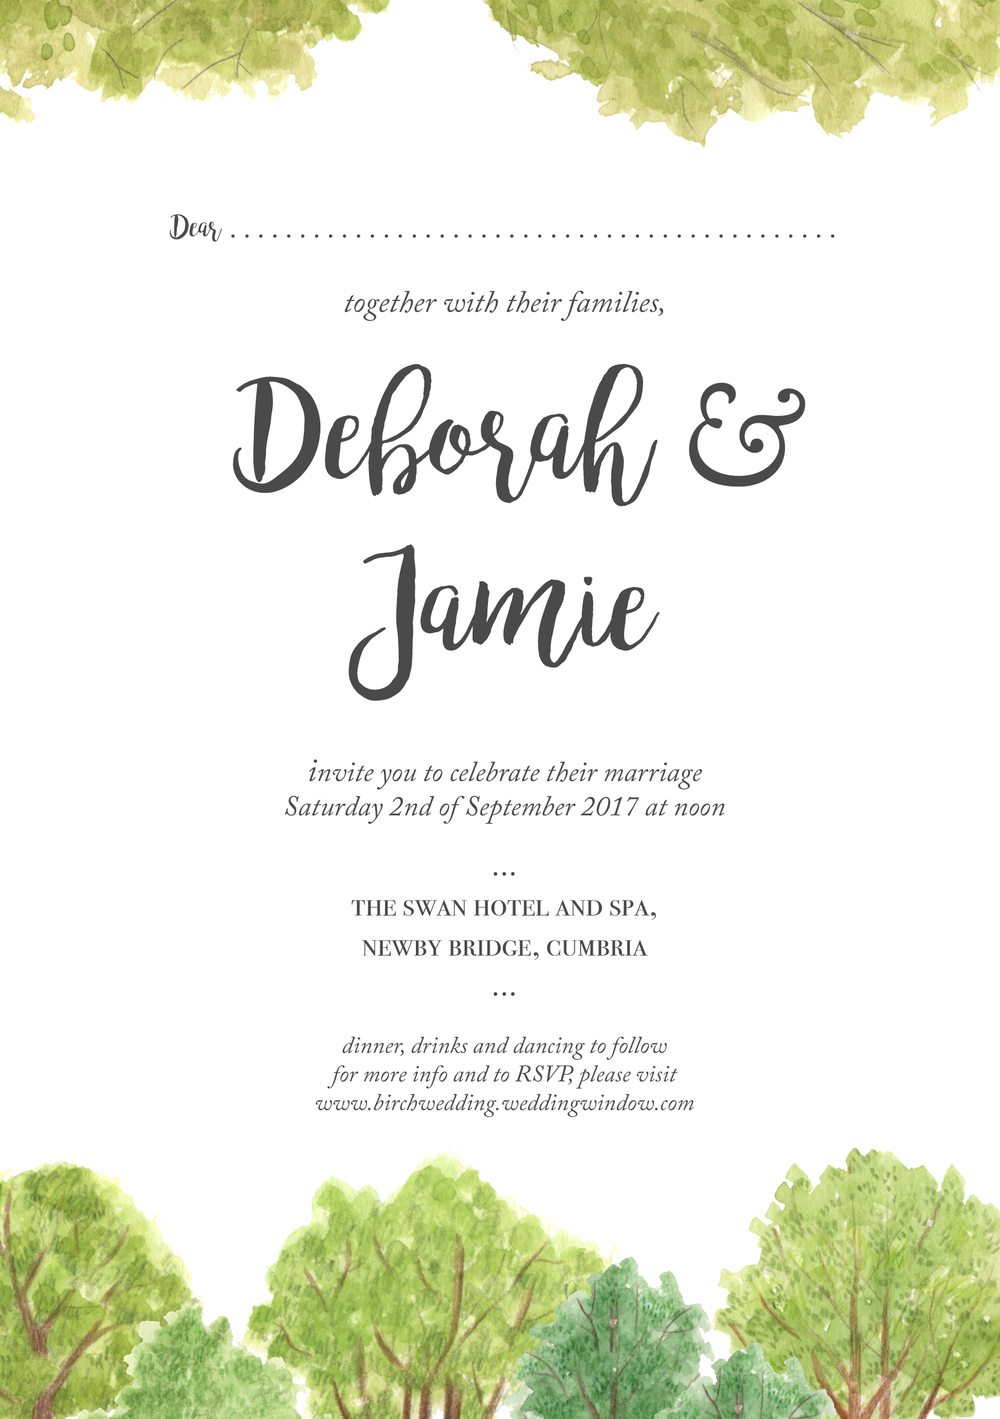 Wedding Stationary: Invitation